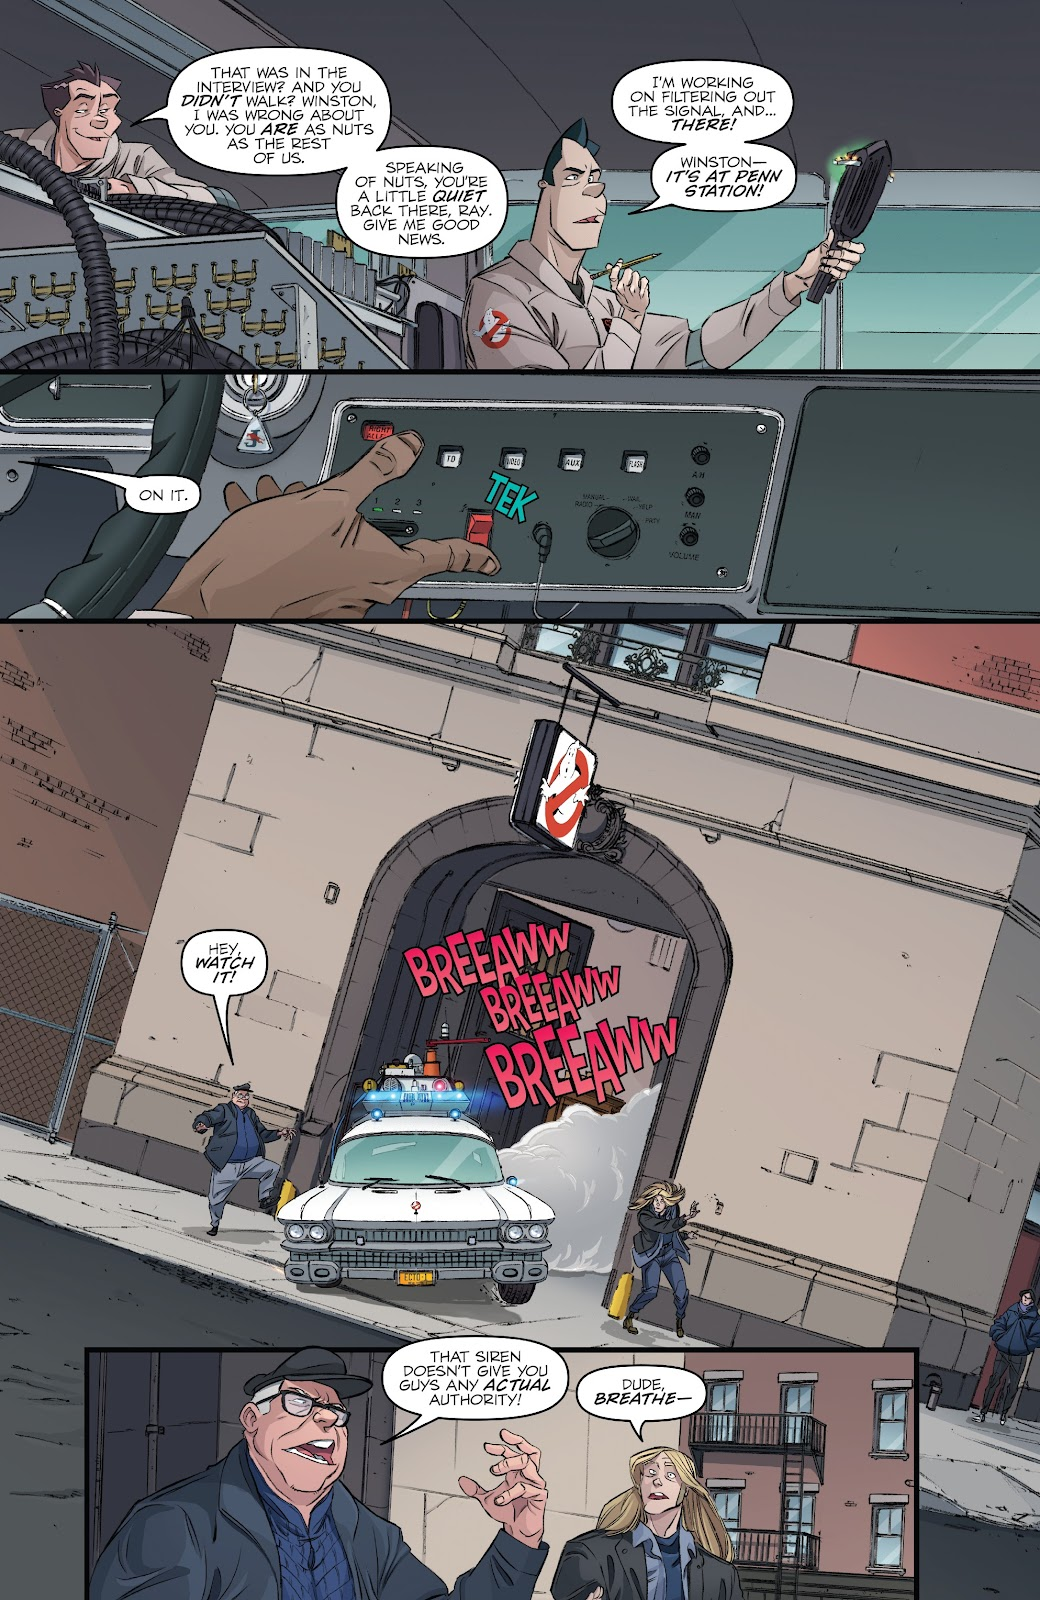 Read online Ghostbusters 35th Anniversary: Ghostbusters comic -  Issue # Full - 11